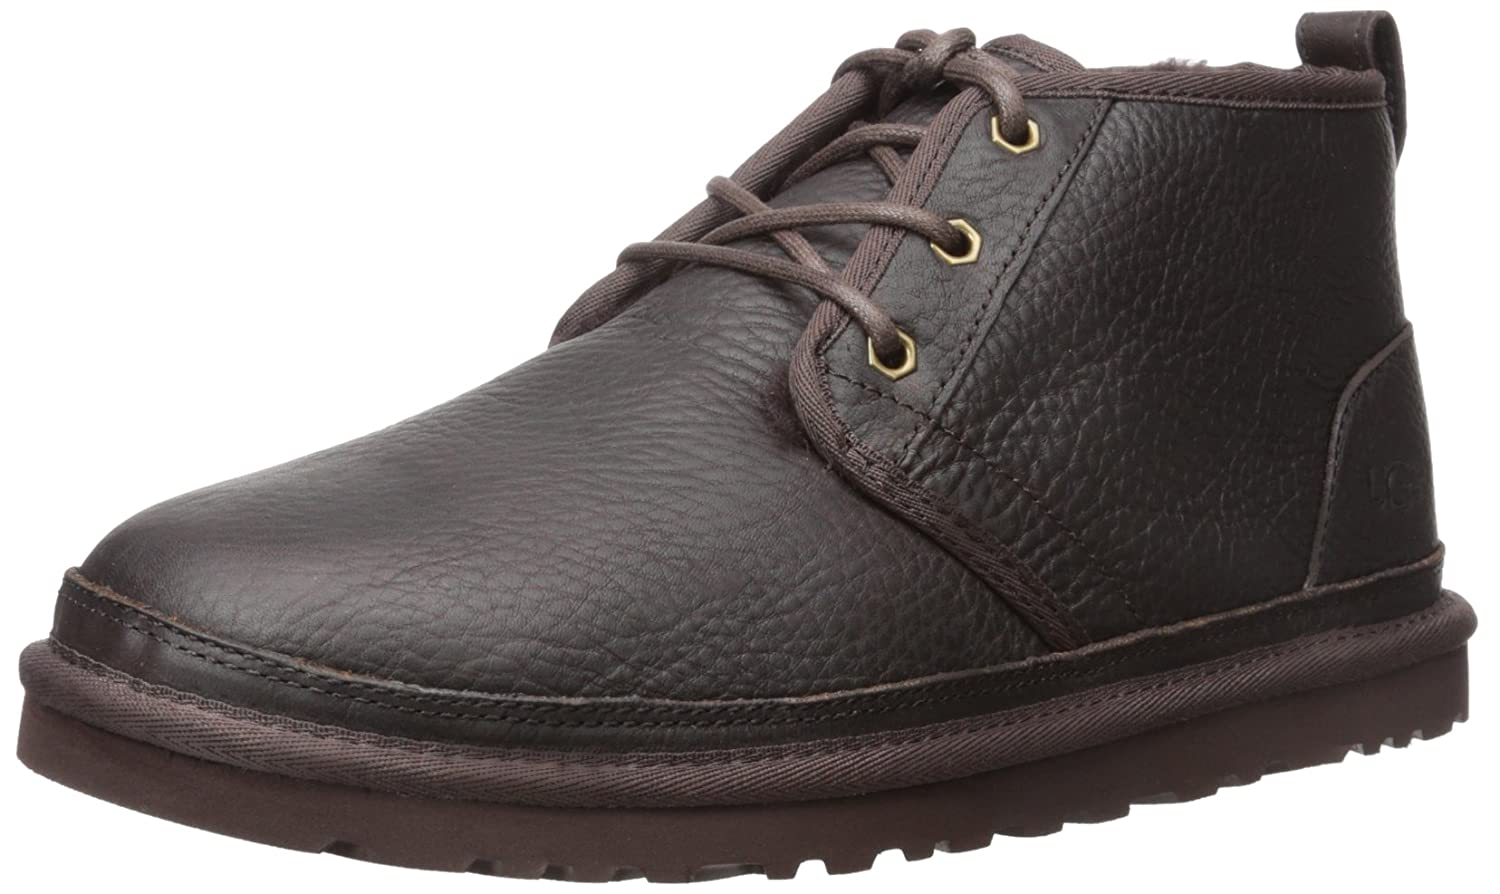 Ugg Men's Neumel Ankle-High Leather Boot